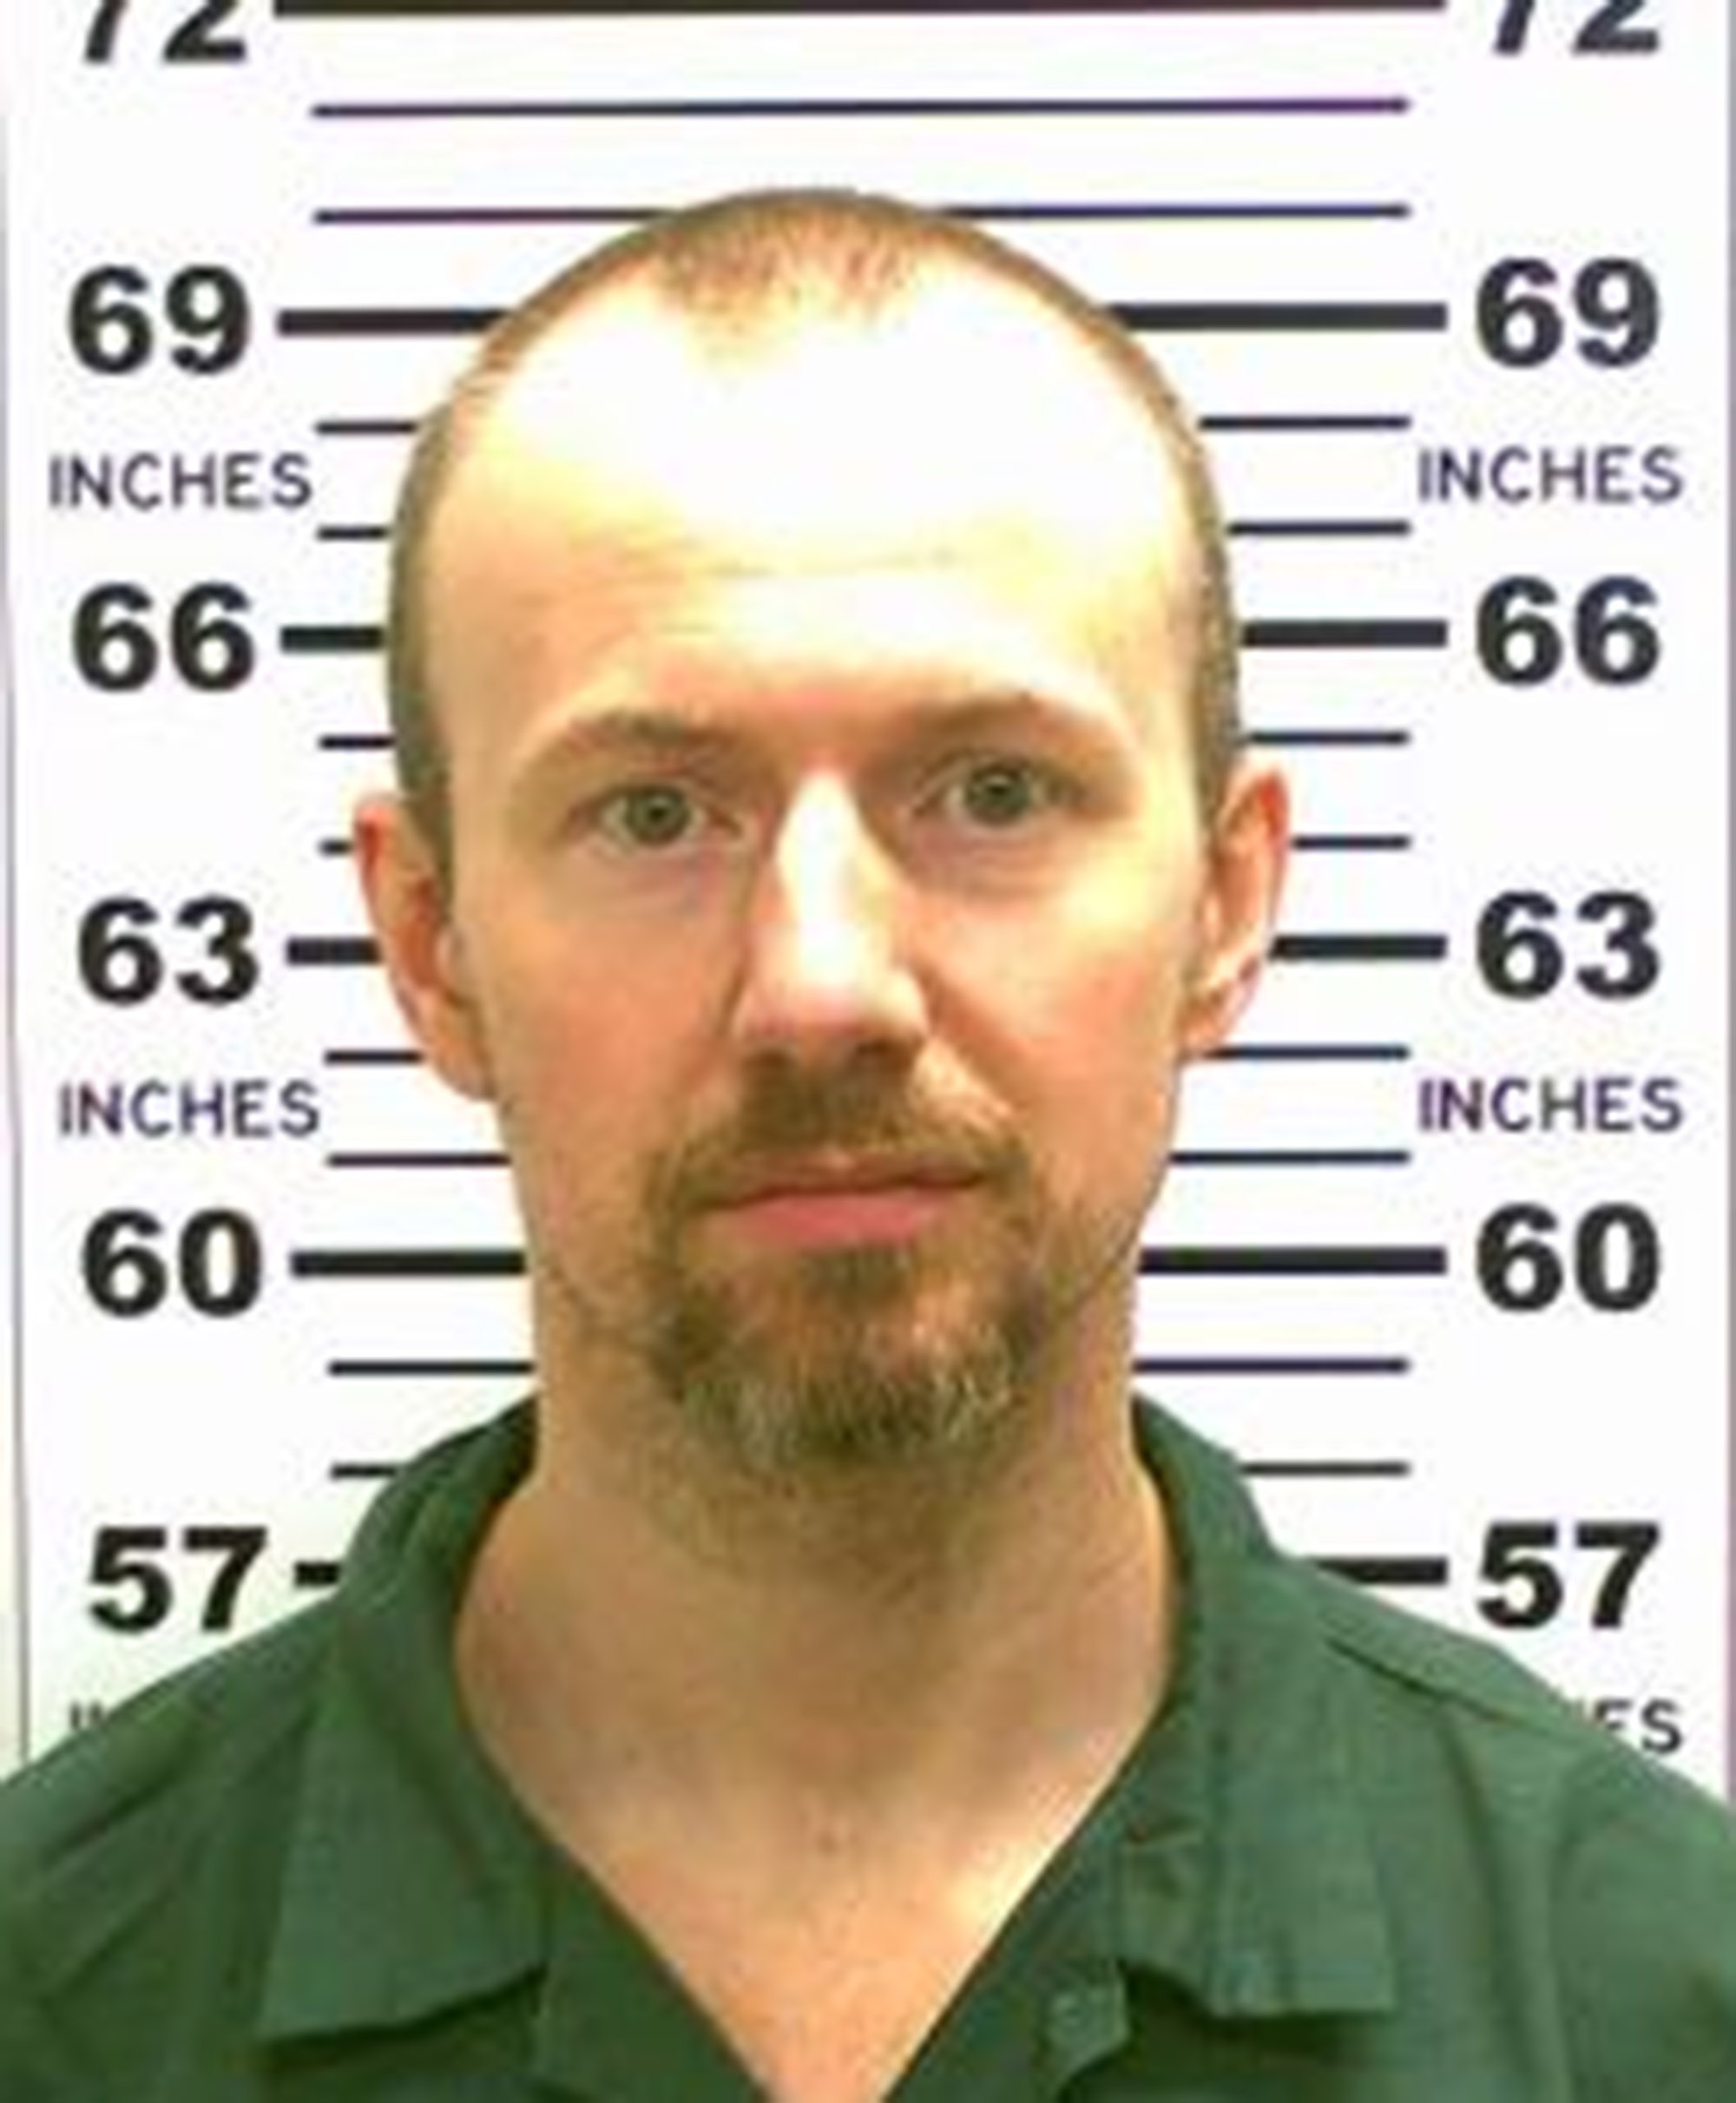 In this handout from New York State Police, convicted murderer David Sweat (L) is shown. Richard Matt, 48, and Sweat, 34, escaped from the maximum security prison June 6, 2015 using power tools and going through a manhole.